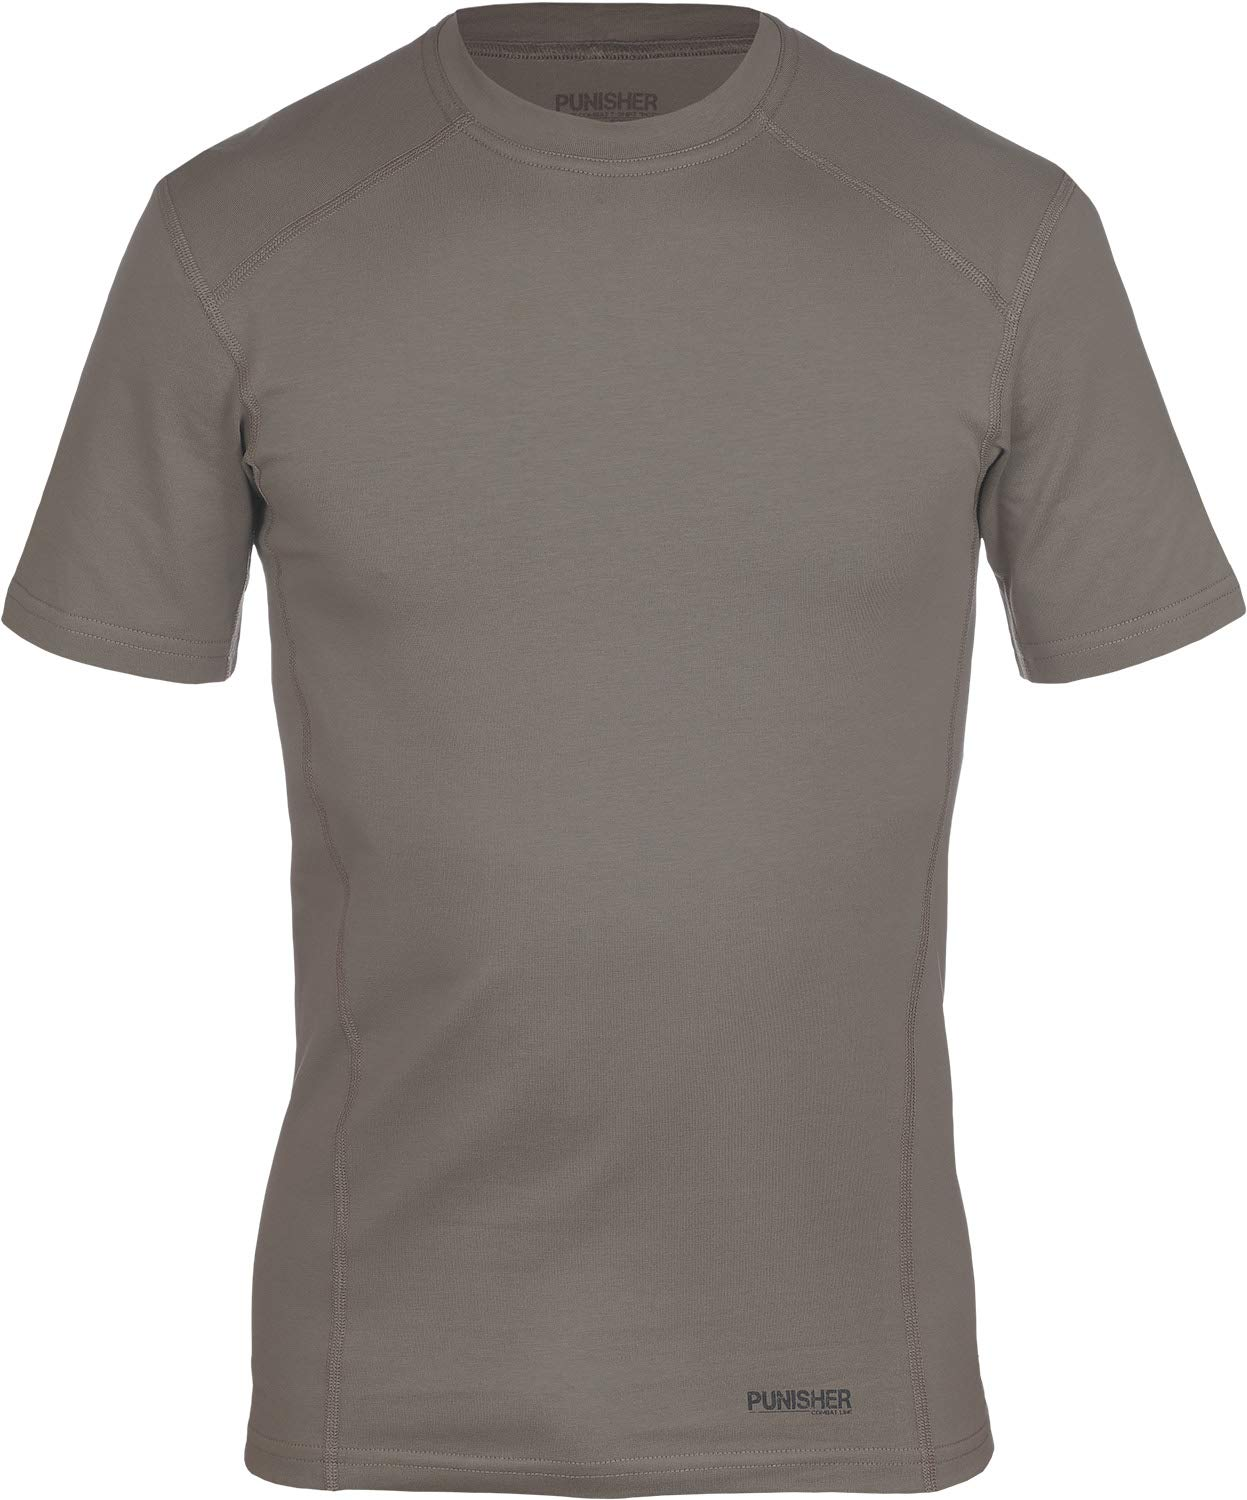 281Z Military Stretch Cotton Underwear T-Shirt - Tactical Hiking Outdoor - Punisher Combat Line (Olive Drab, Large) by 281Z